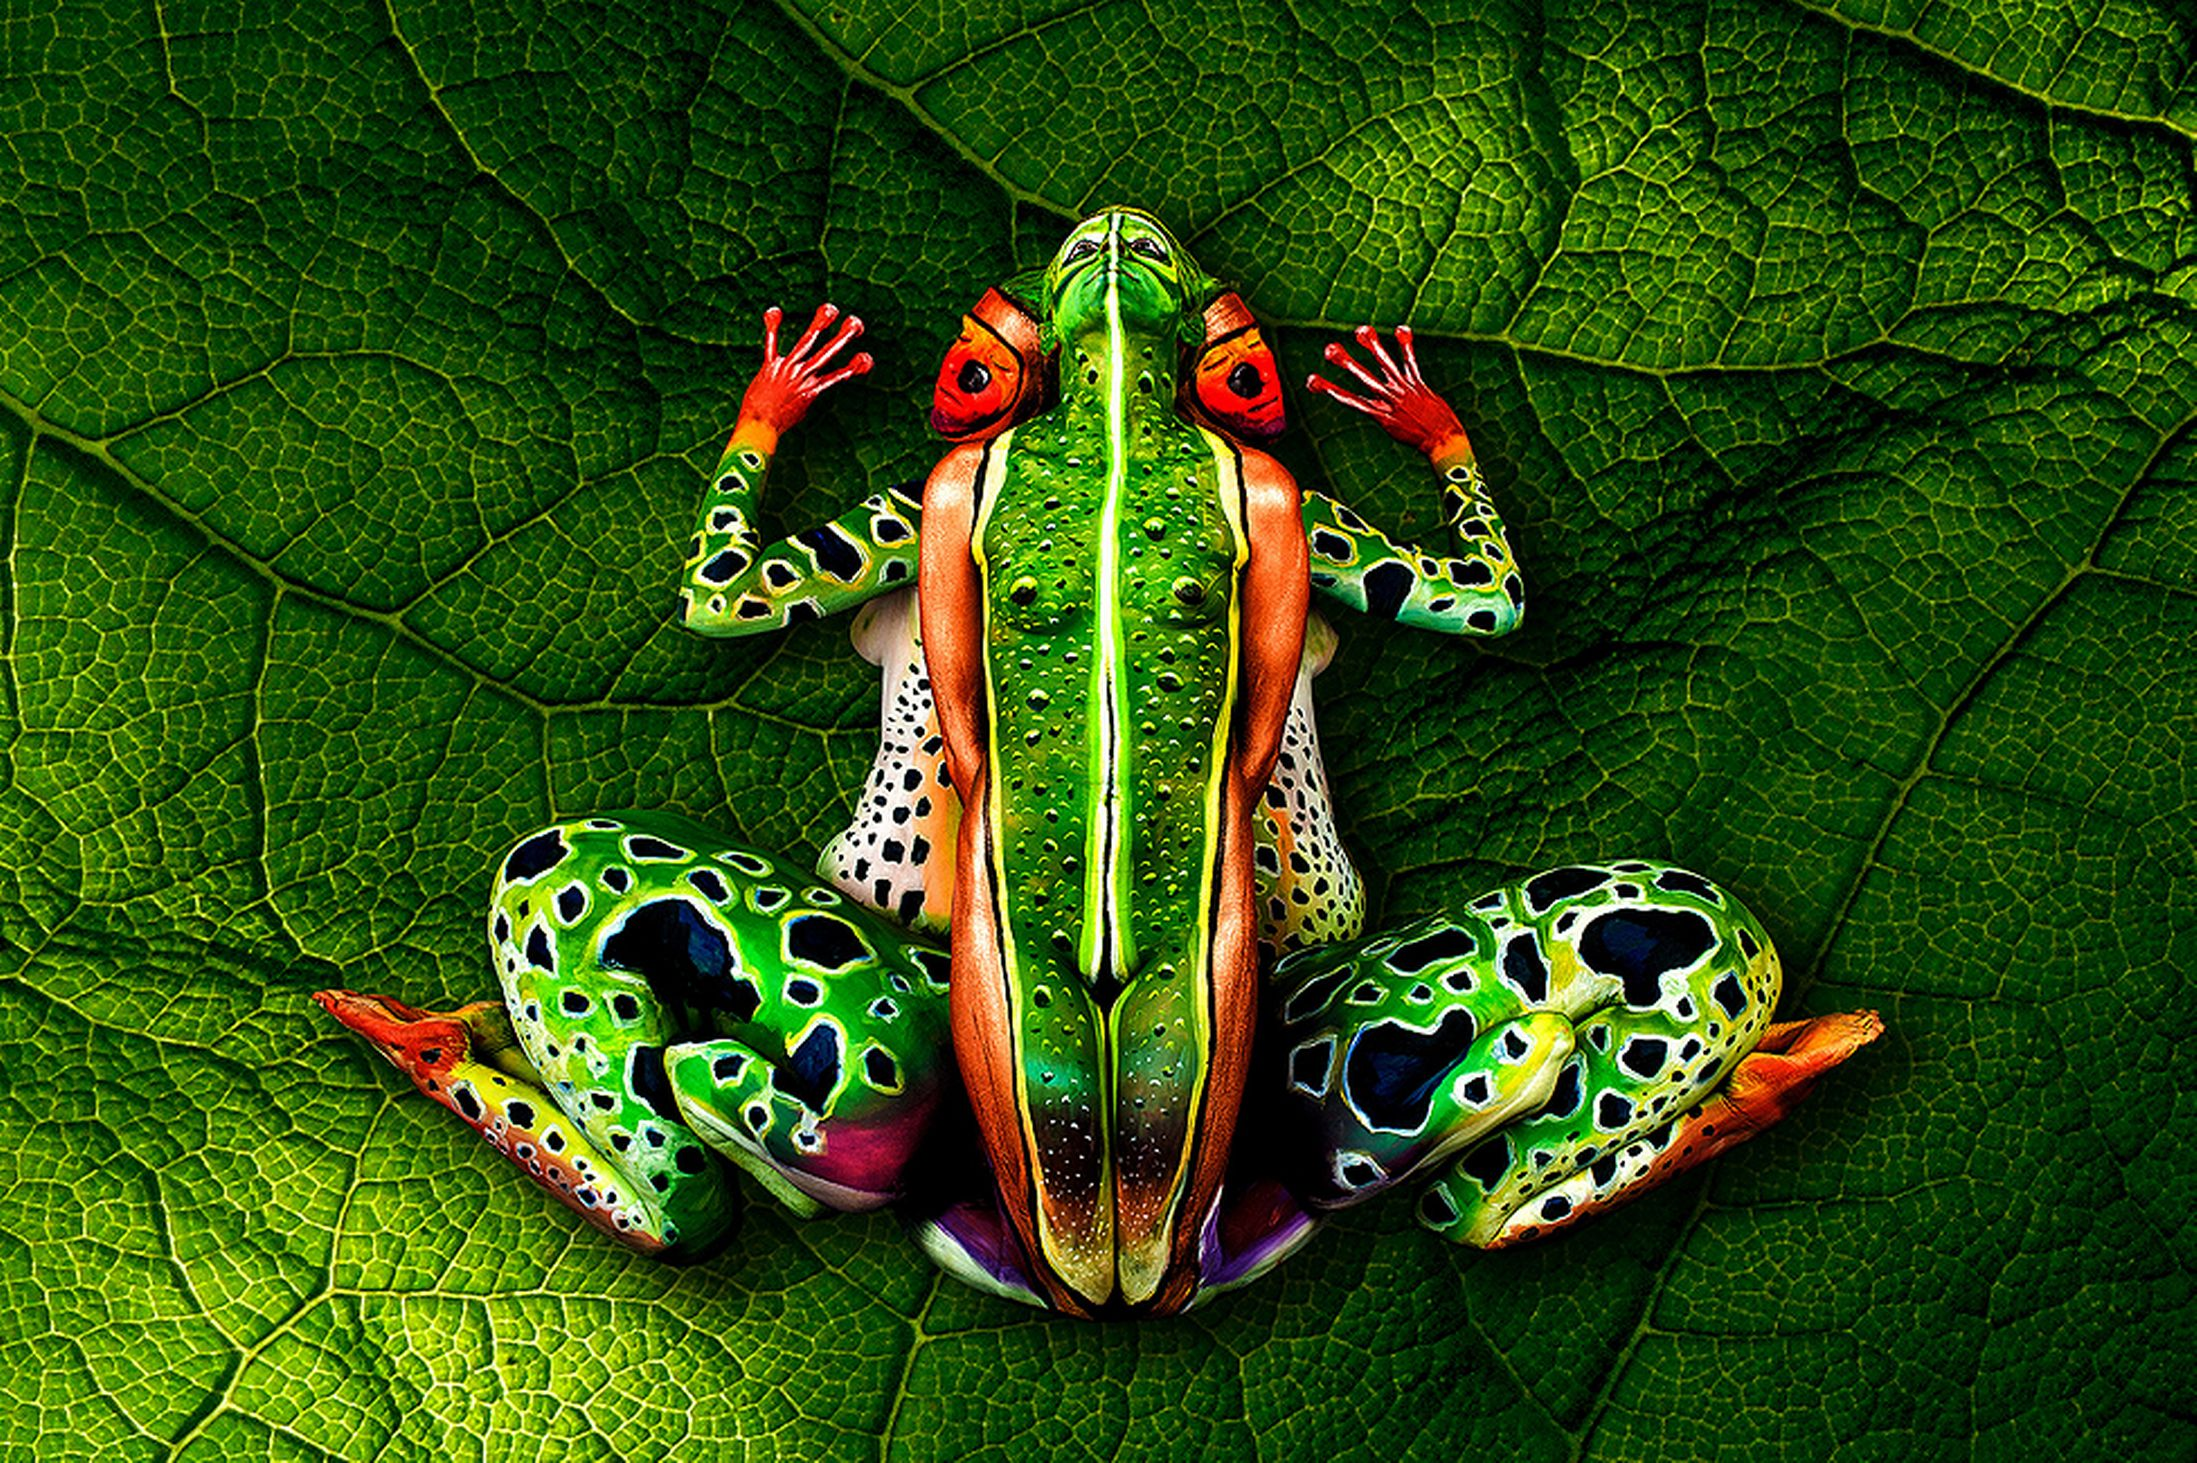 Johannes Stoetter - Body Painting Champion - Frog